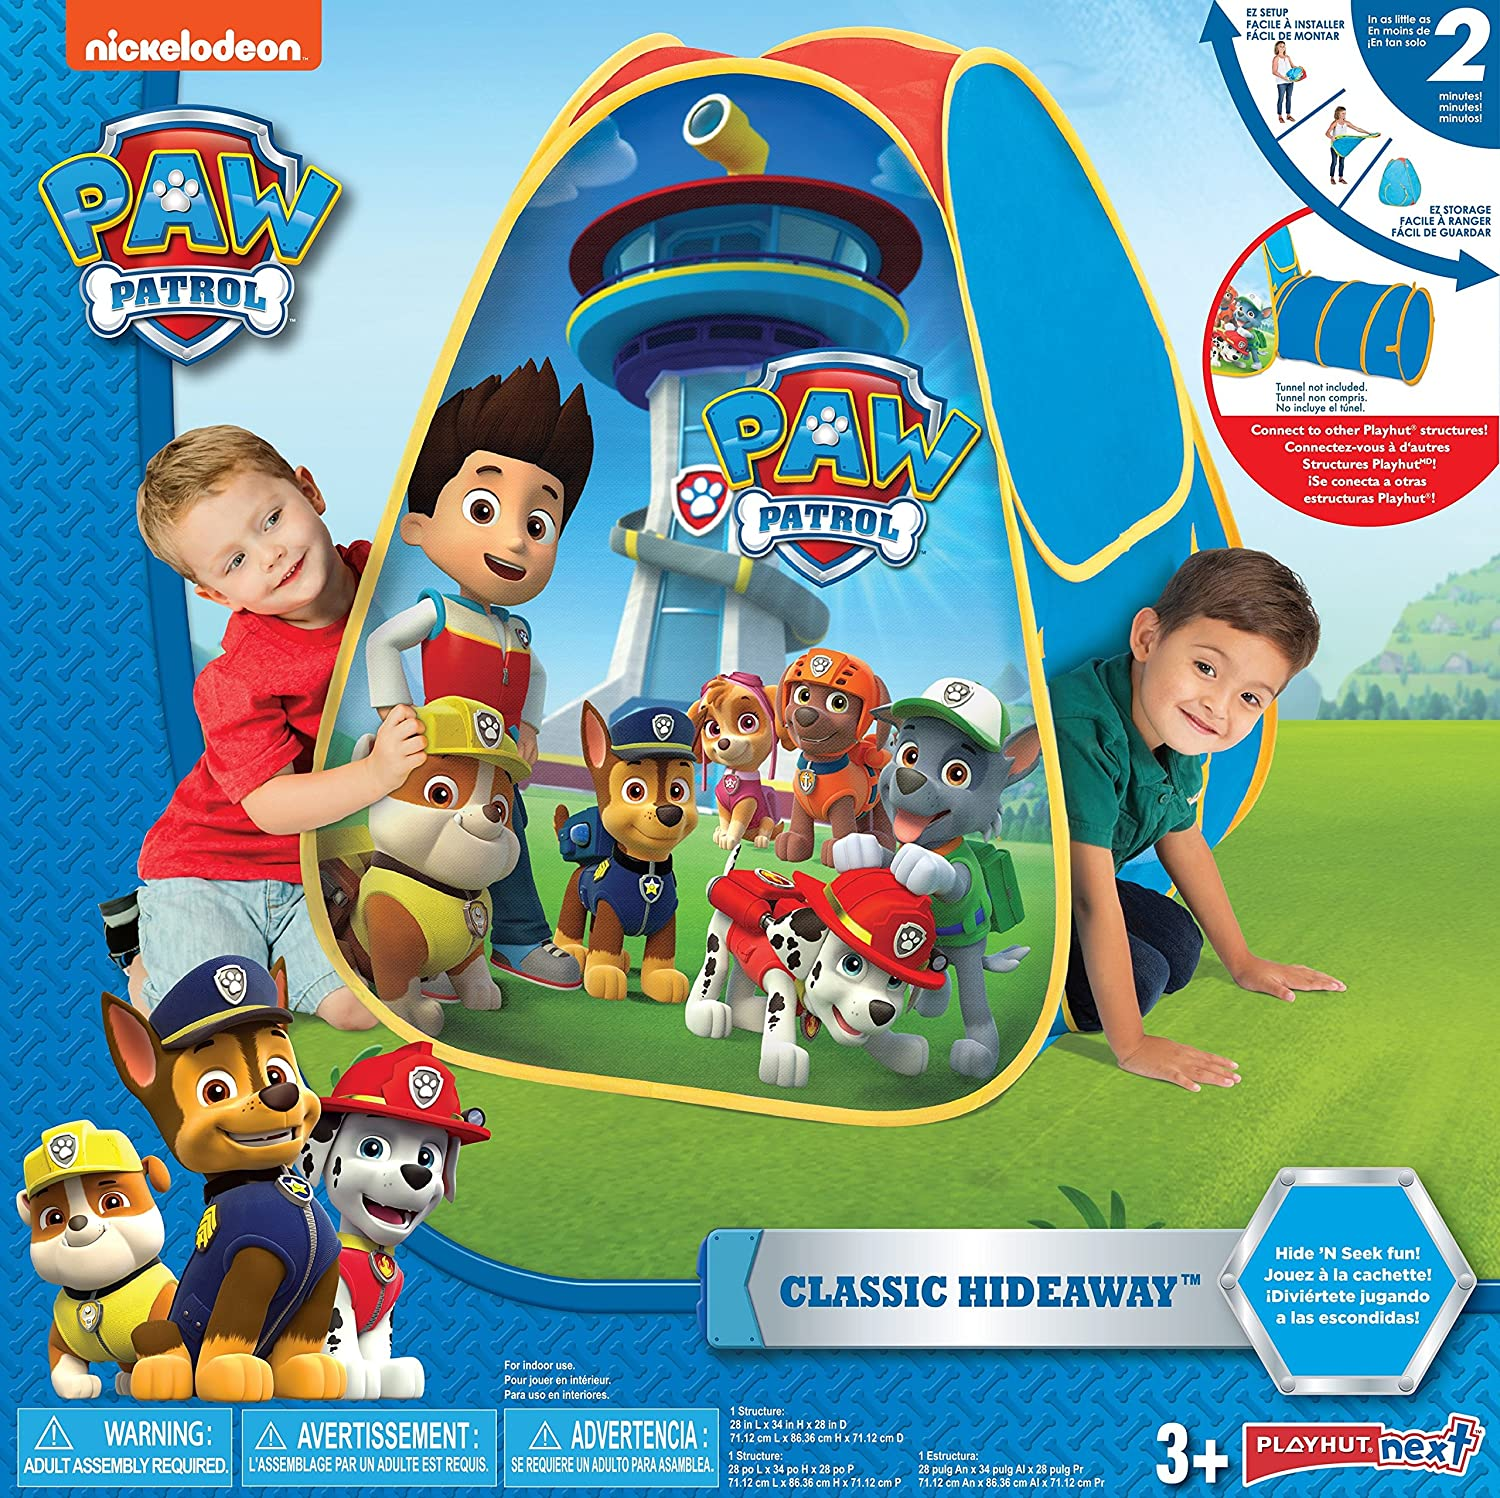 Amazon.com Playhut Paw Patrol Classic Hideaway Playhouse Blue Toys u0026 Games  sc 1 st  Amazon.com : playhut tent with tunnel - memphite.com